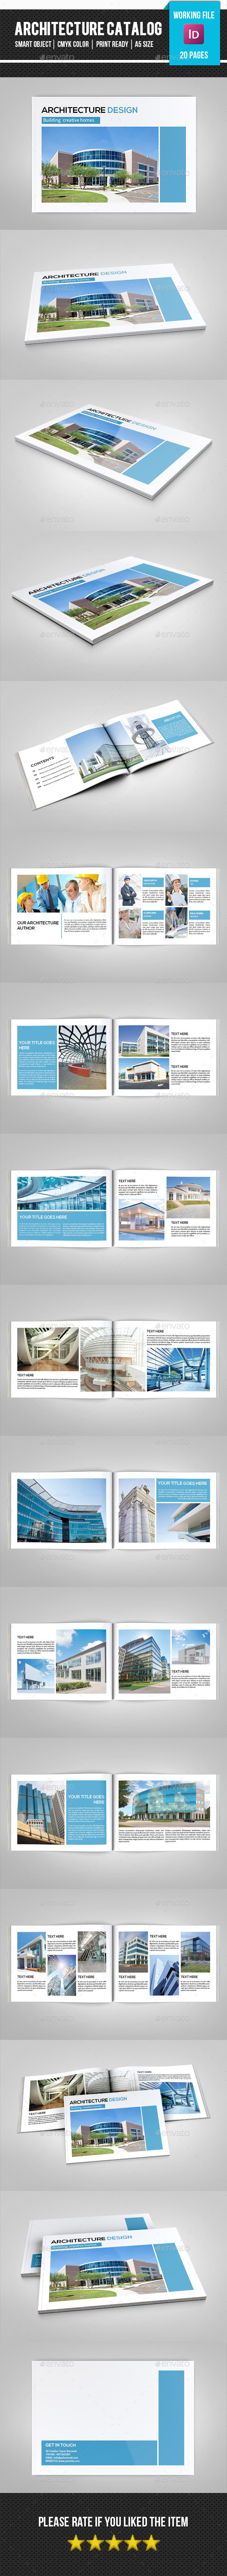 GraphicRiver Architect Catalog Brochure-V163 11210852